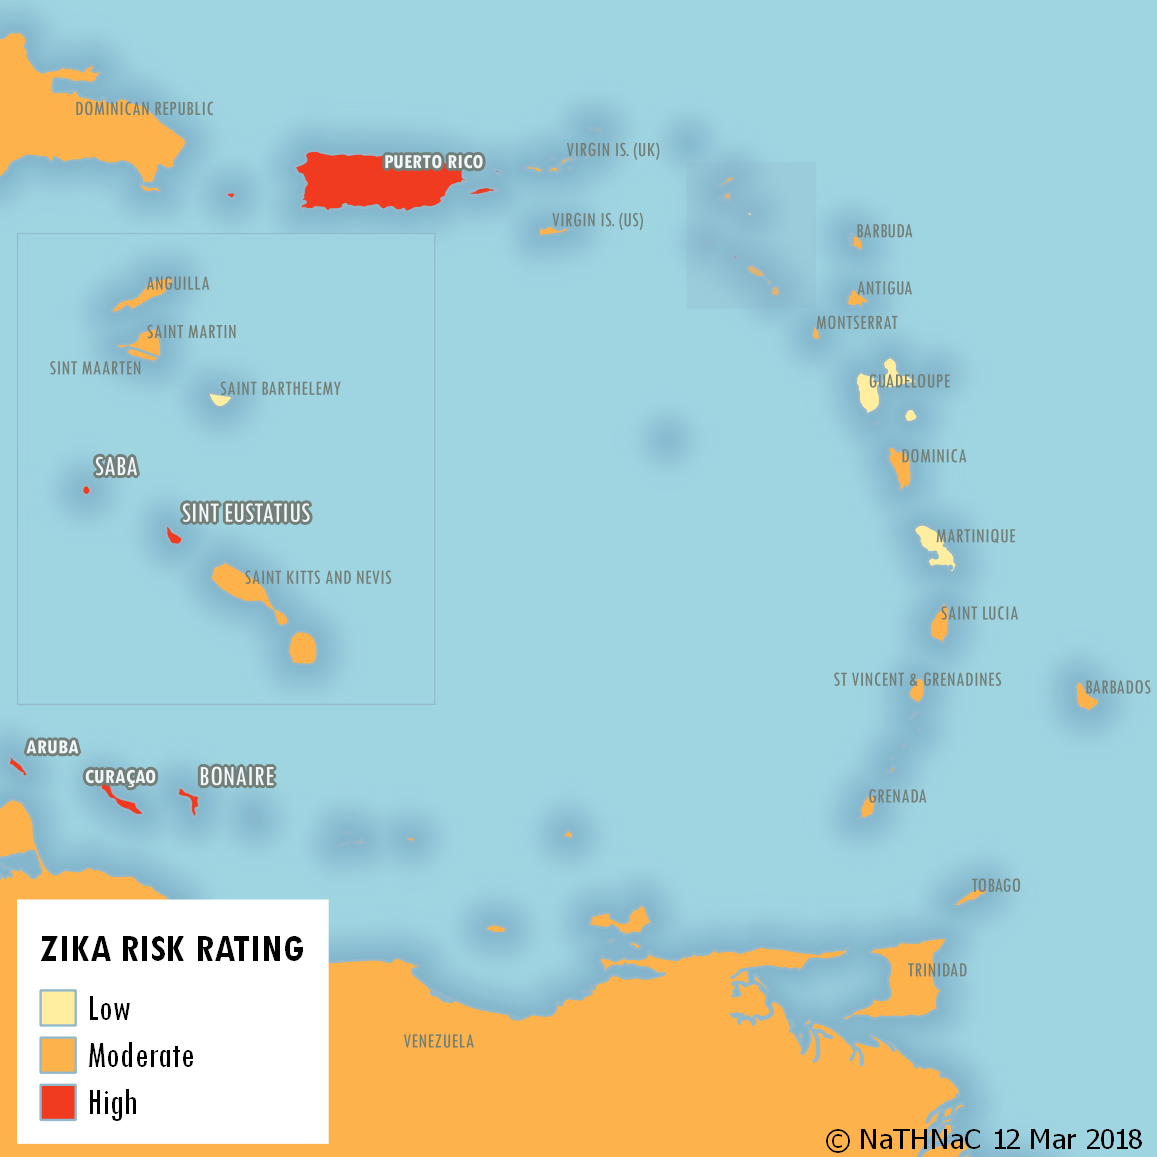 Zika Risk Caribbean Islands